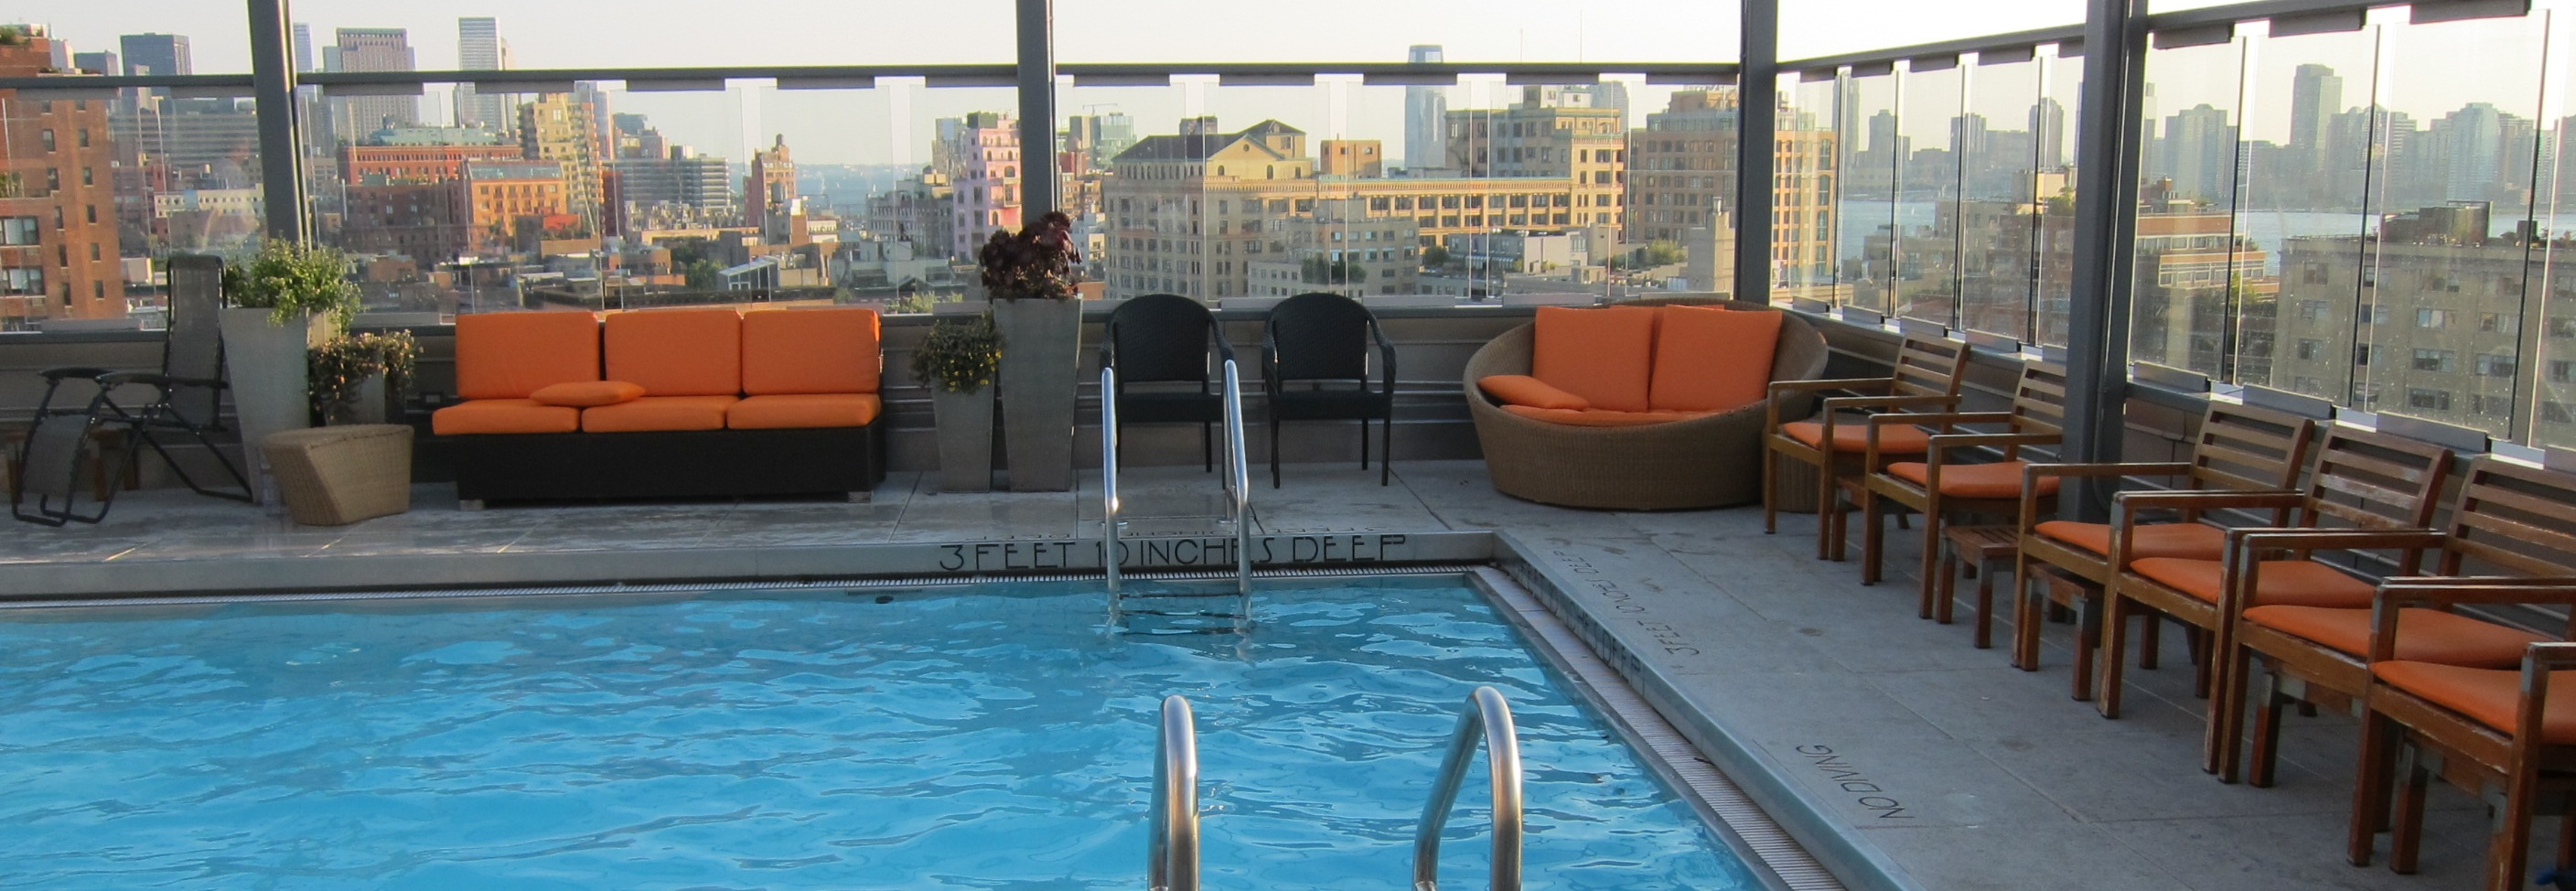 New York's Dachterrassen und Roof-Top Pools